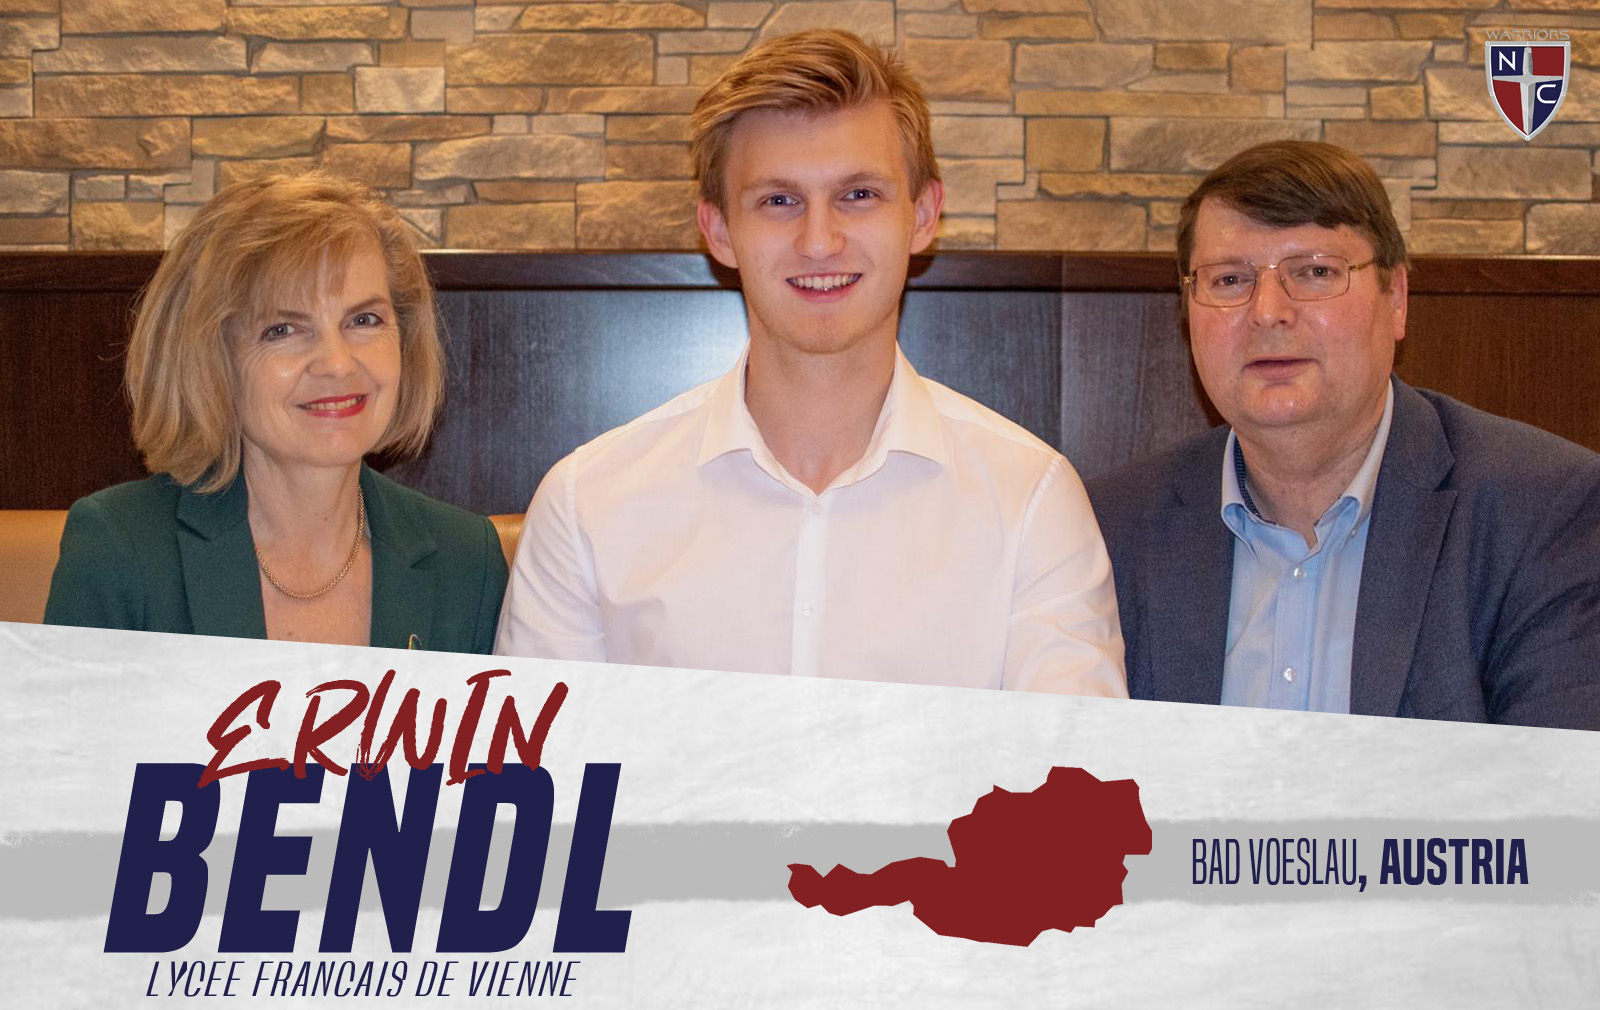 Men's Soccer Adds Erwin Bendl to 2019 Roster